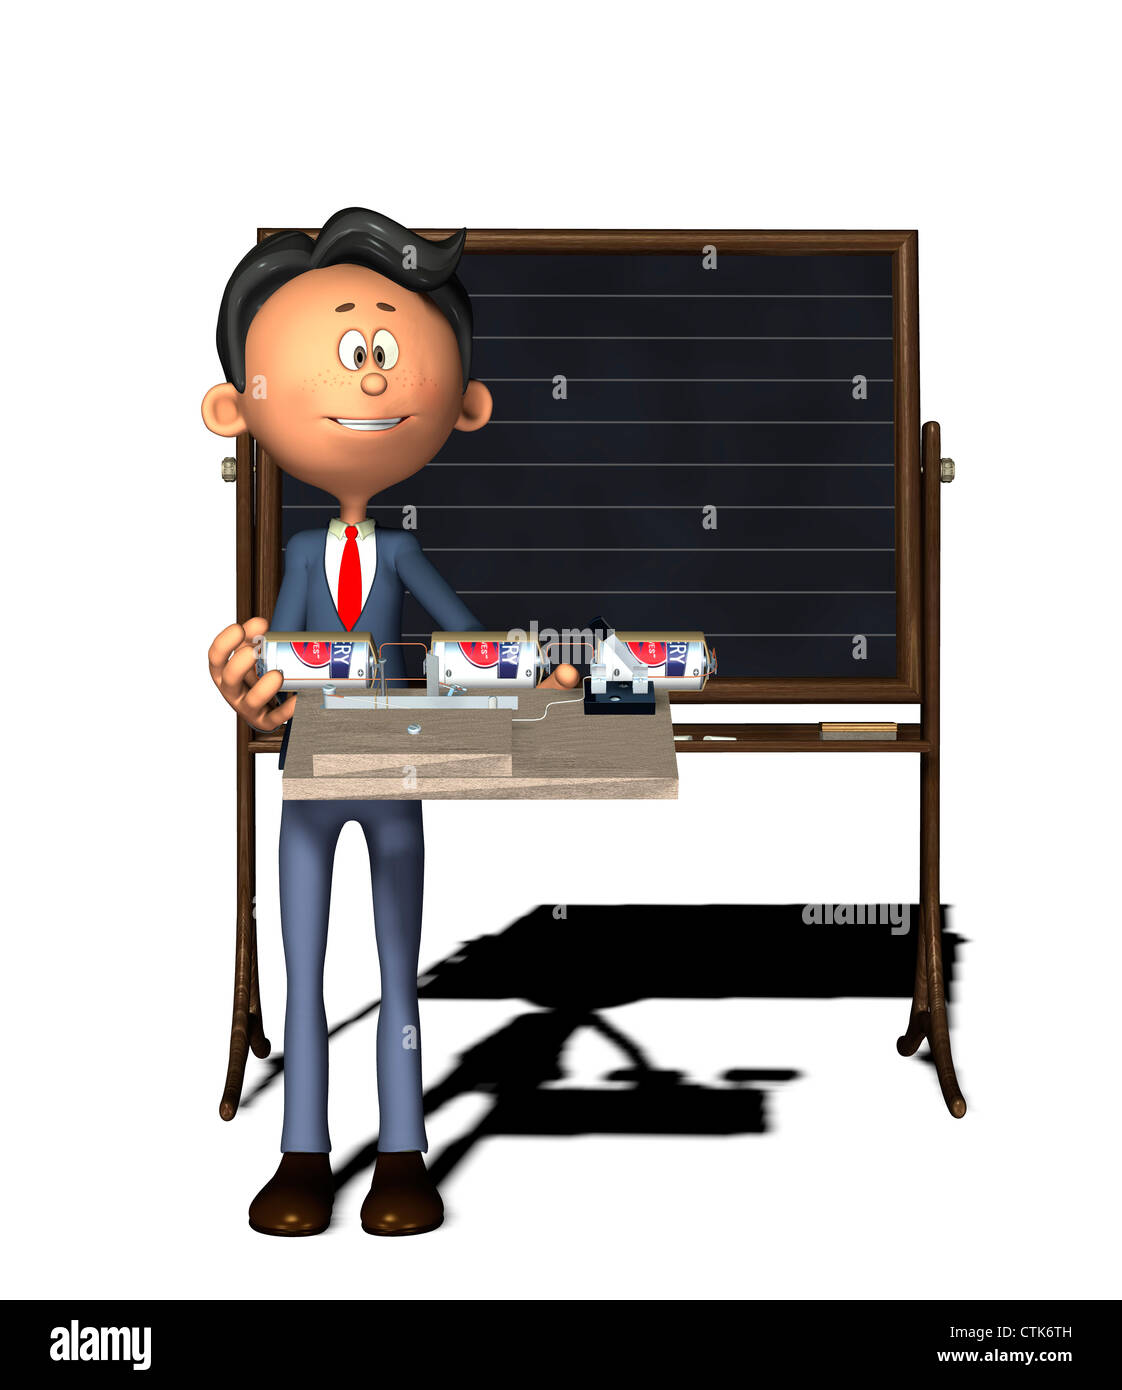 Cartoon-Figur Physiklehrer mit Elektronik-Experiment (Summer) Stockbild